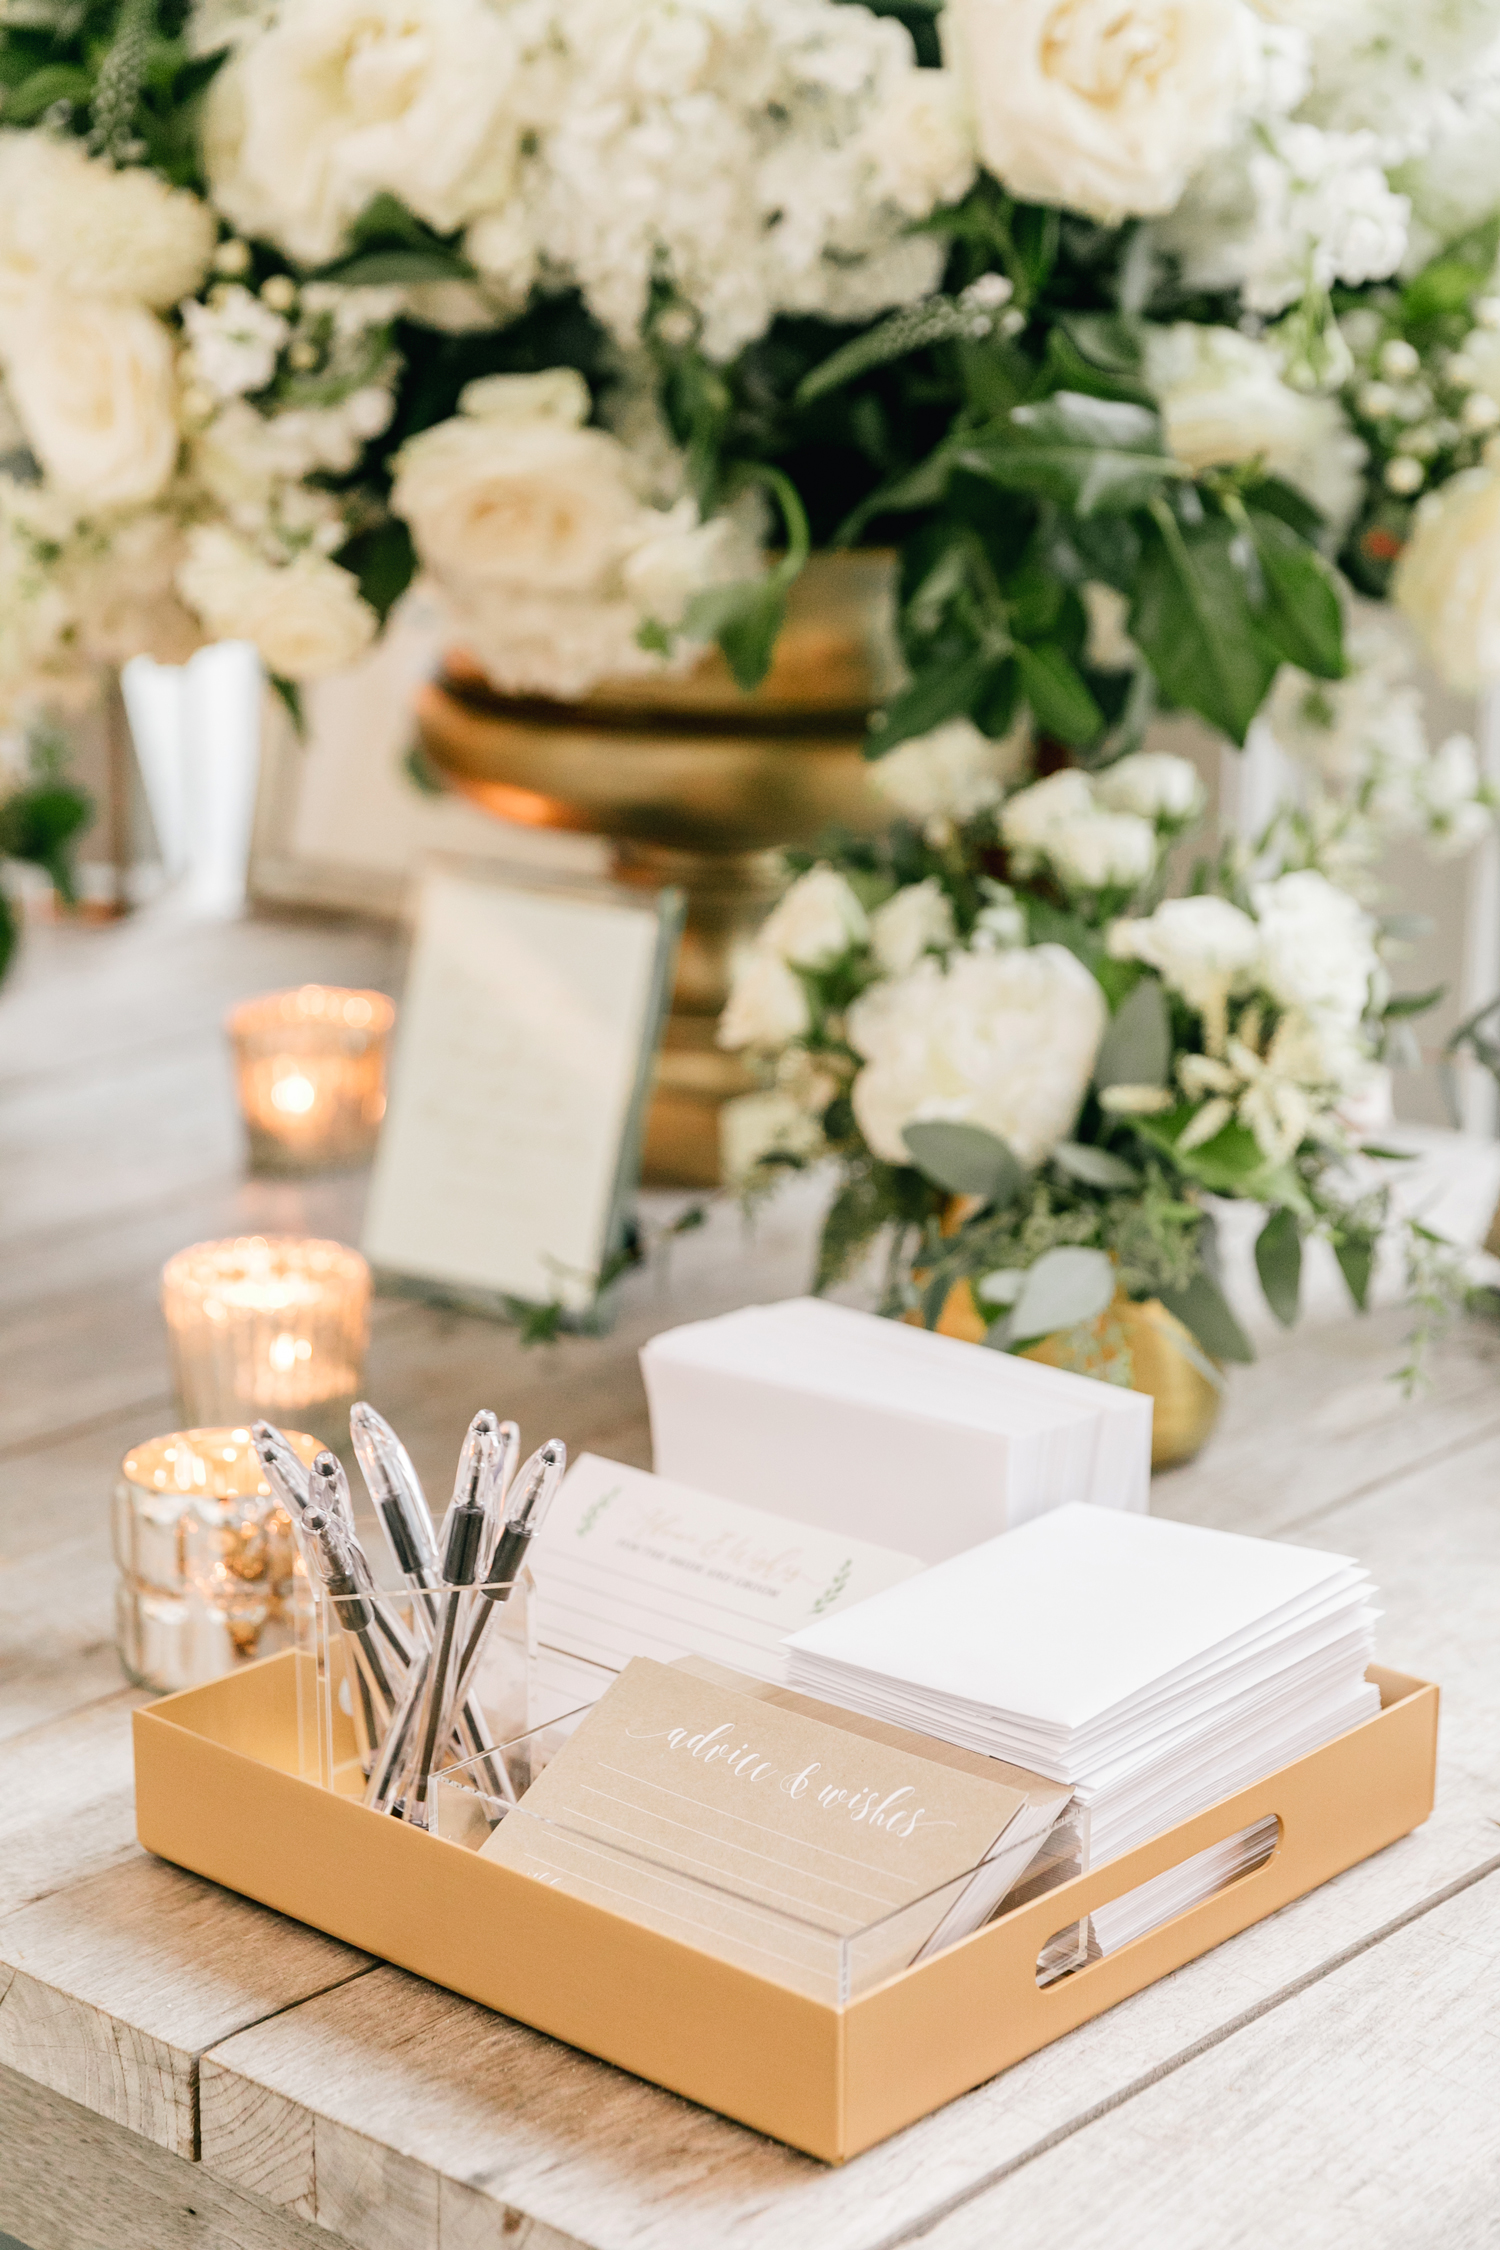 wedding advice cards on wood table with candles and white roses